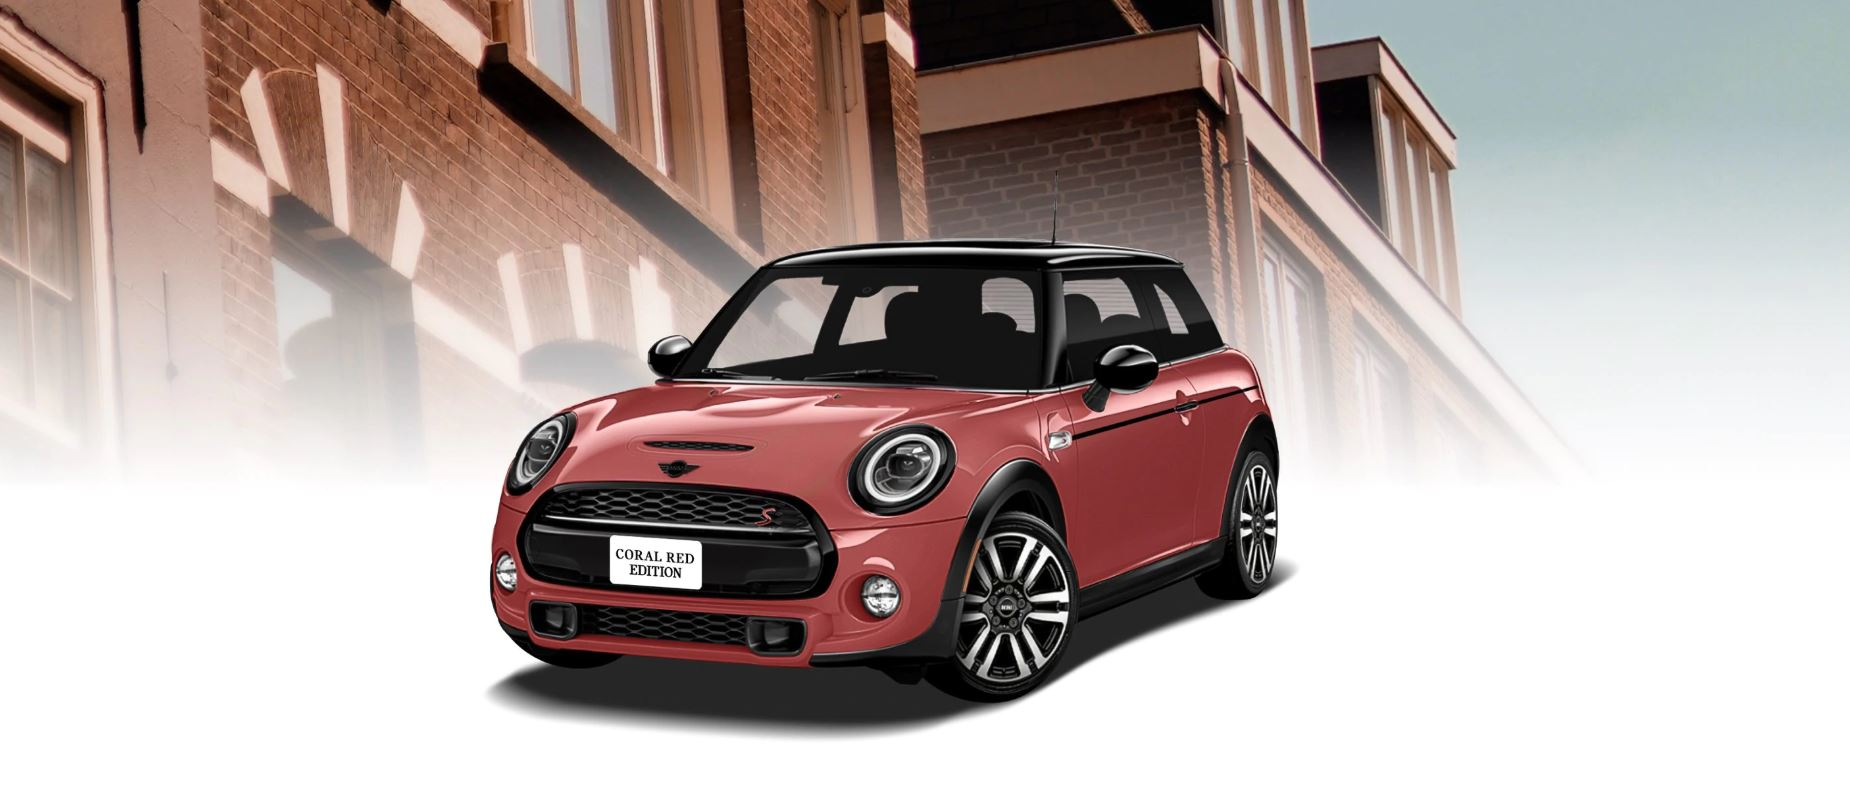 The MINI COOPER HARDTOP CORAL RED  EDITION in front of a brick building.